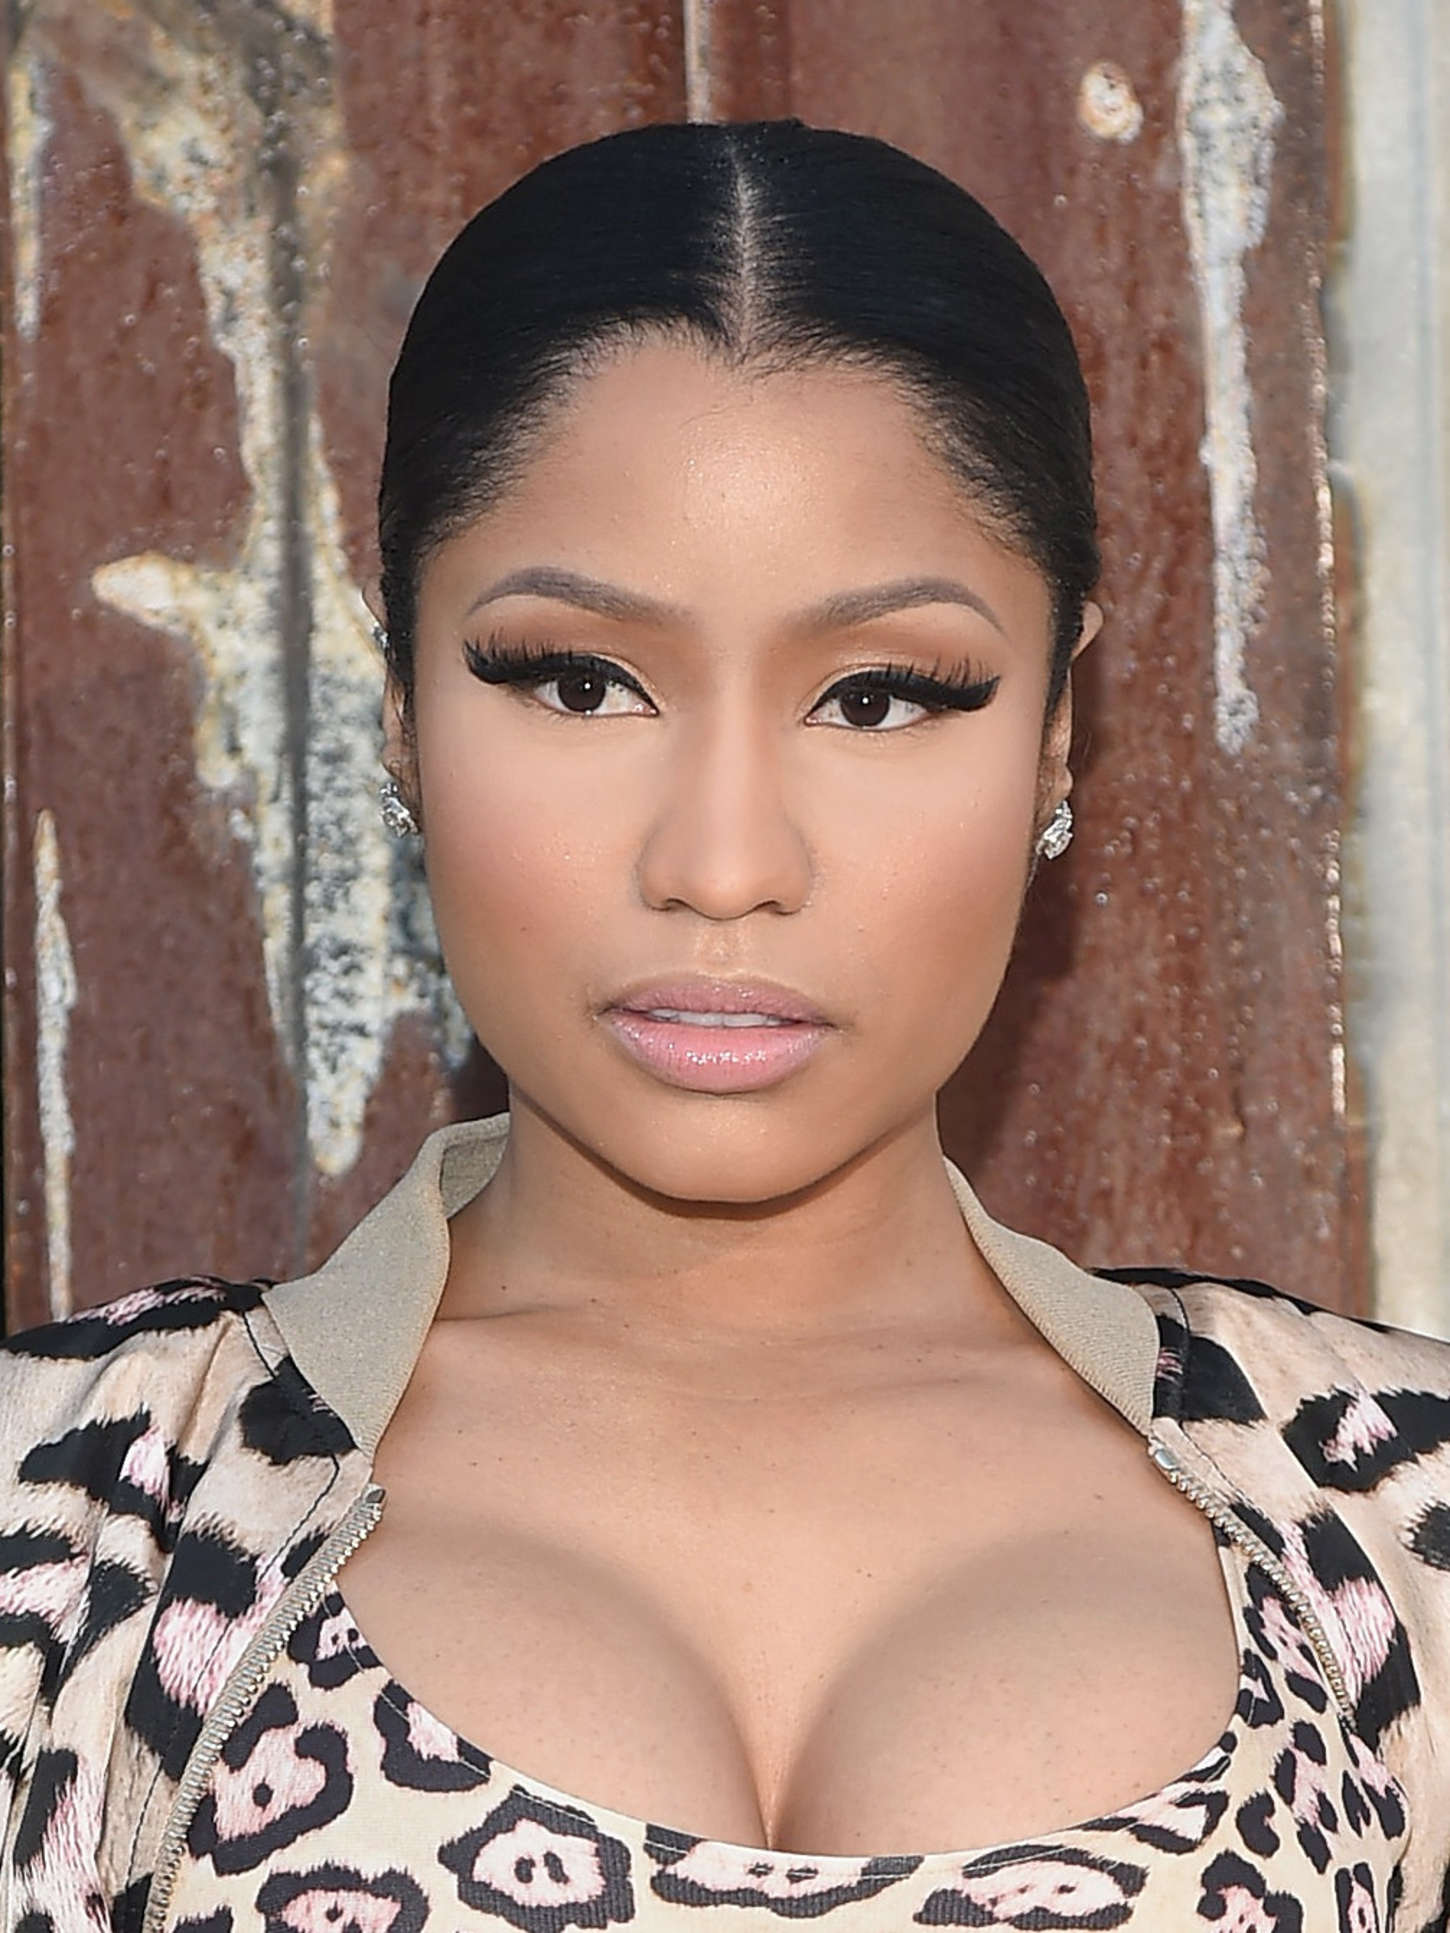 Nicki minaj givenchy spring 2016 fashion show in nyc Nicki minaj fashion style 2016